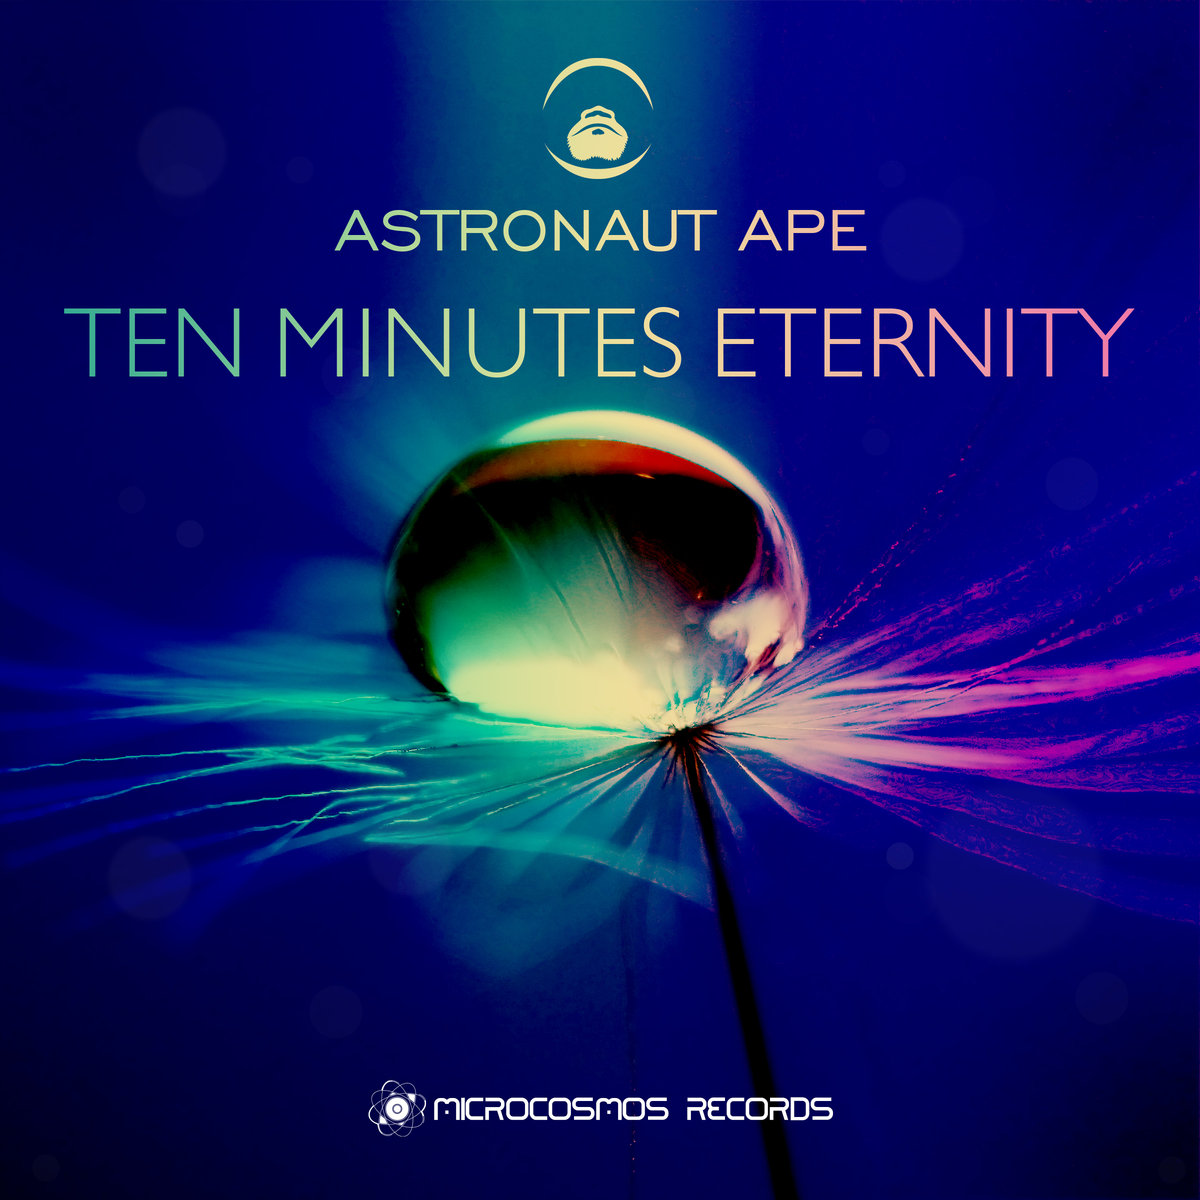 Astronaut Ape - iWorld 2.0 @ 'Ten Minutes Eternity' album (ambient, chill-out)